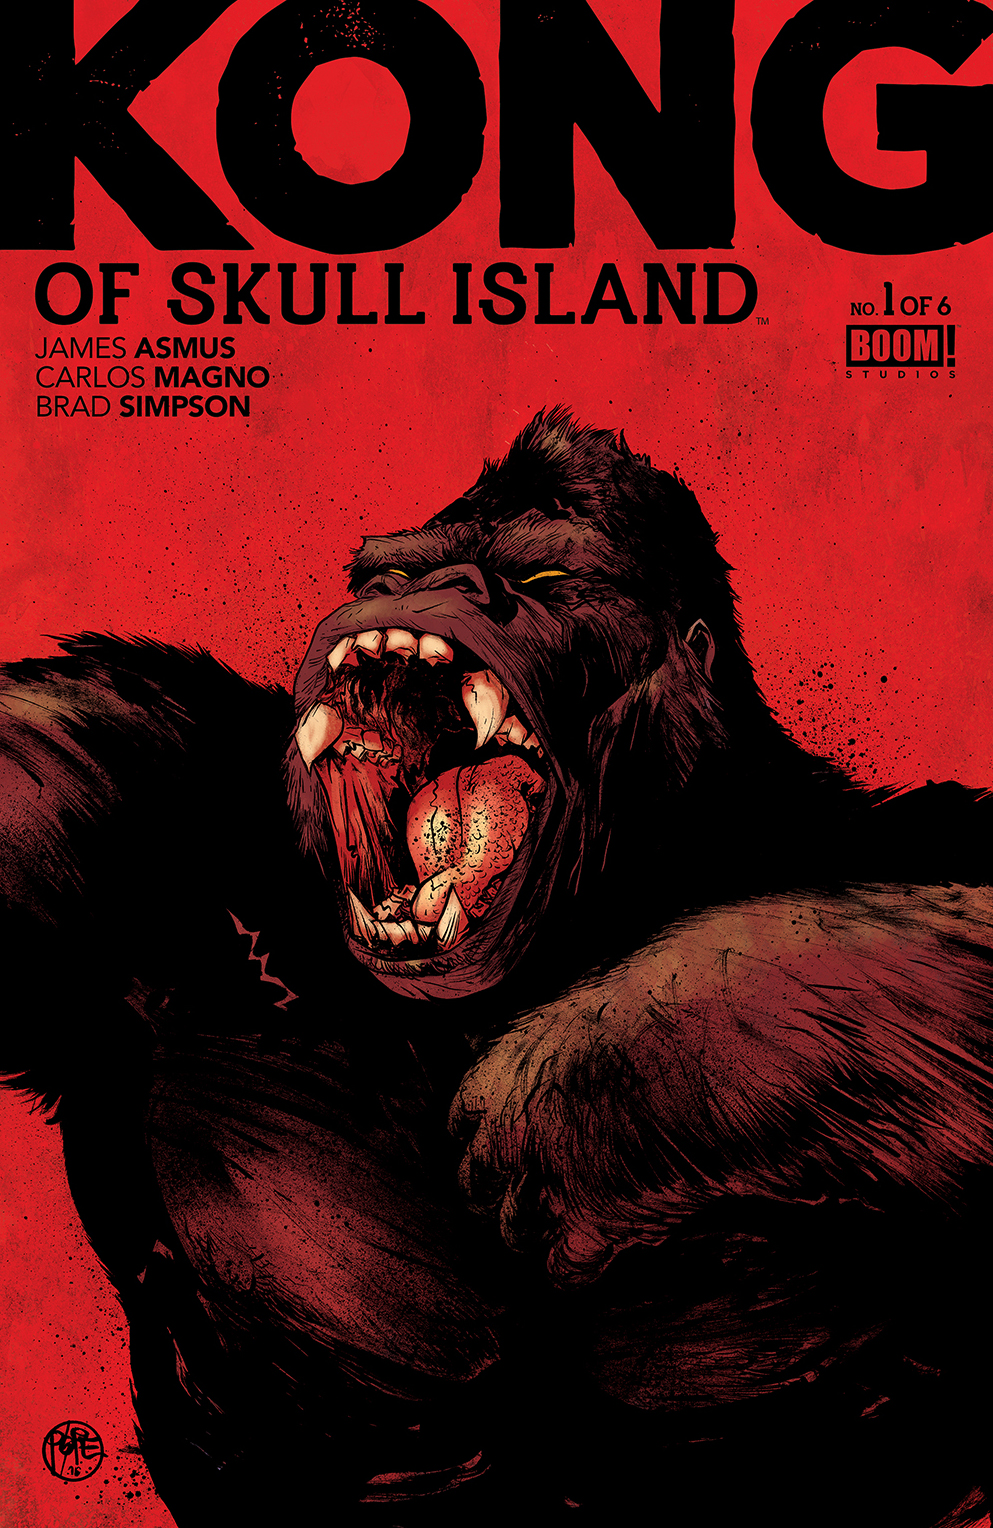 KongSkullIsland_001_AuctionVariant02_Pope_PRESS.jpg